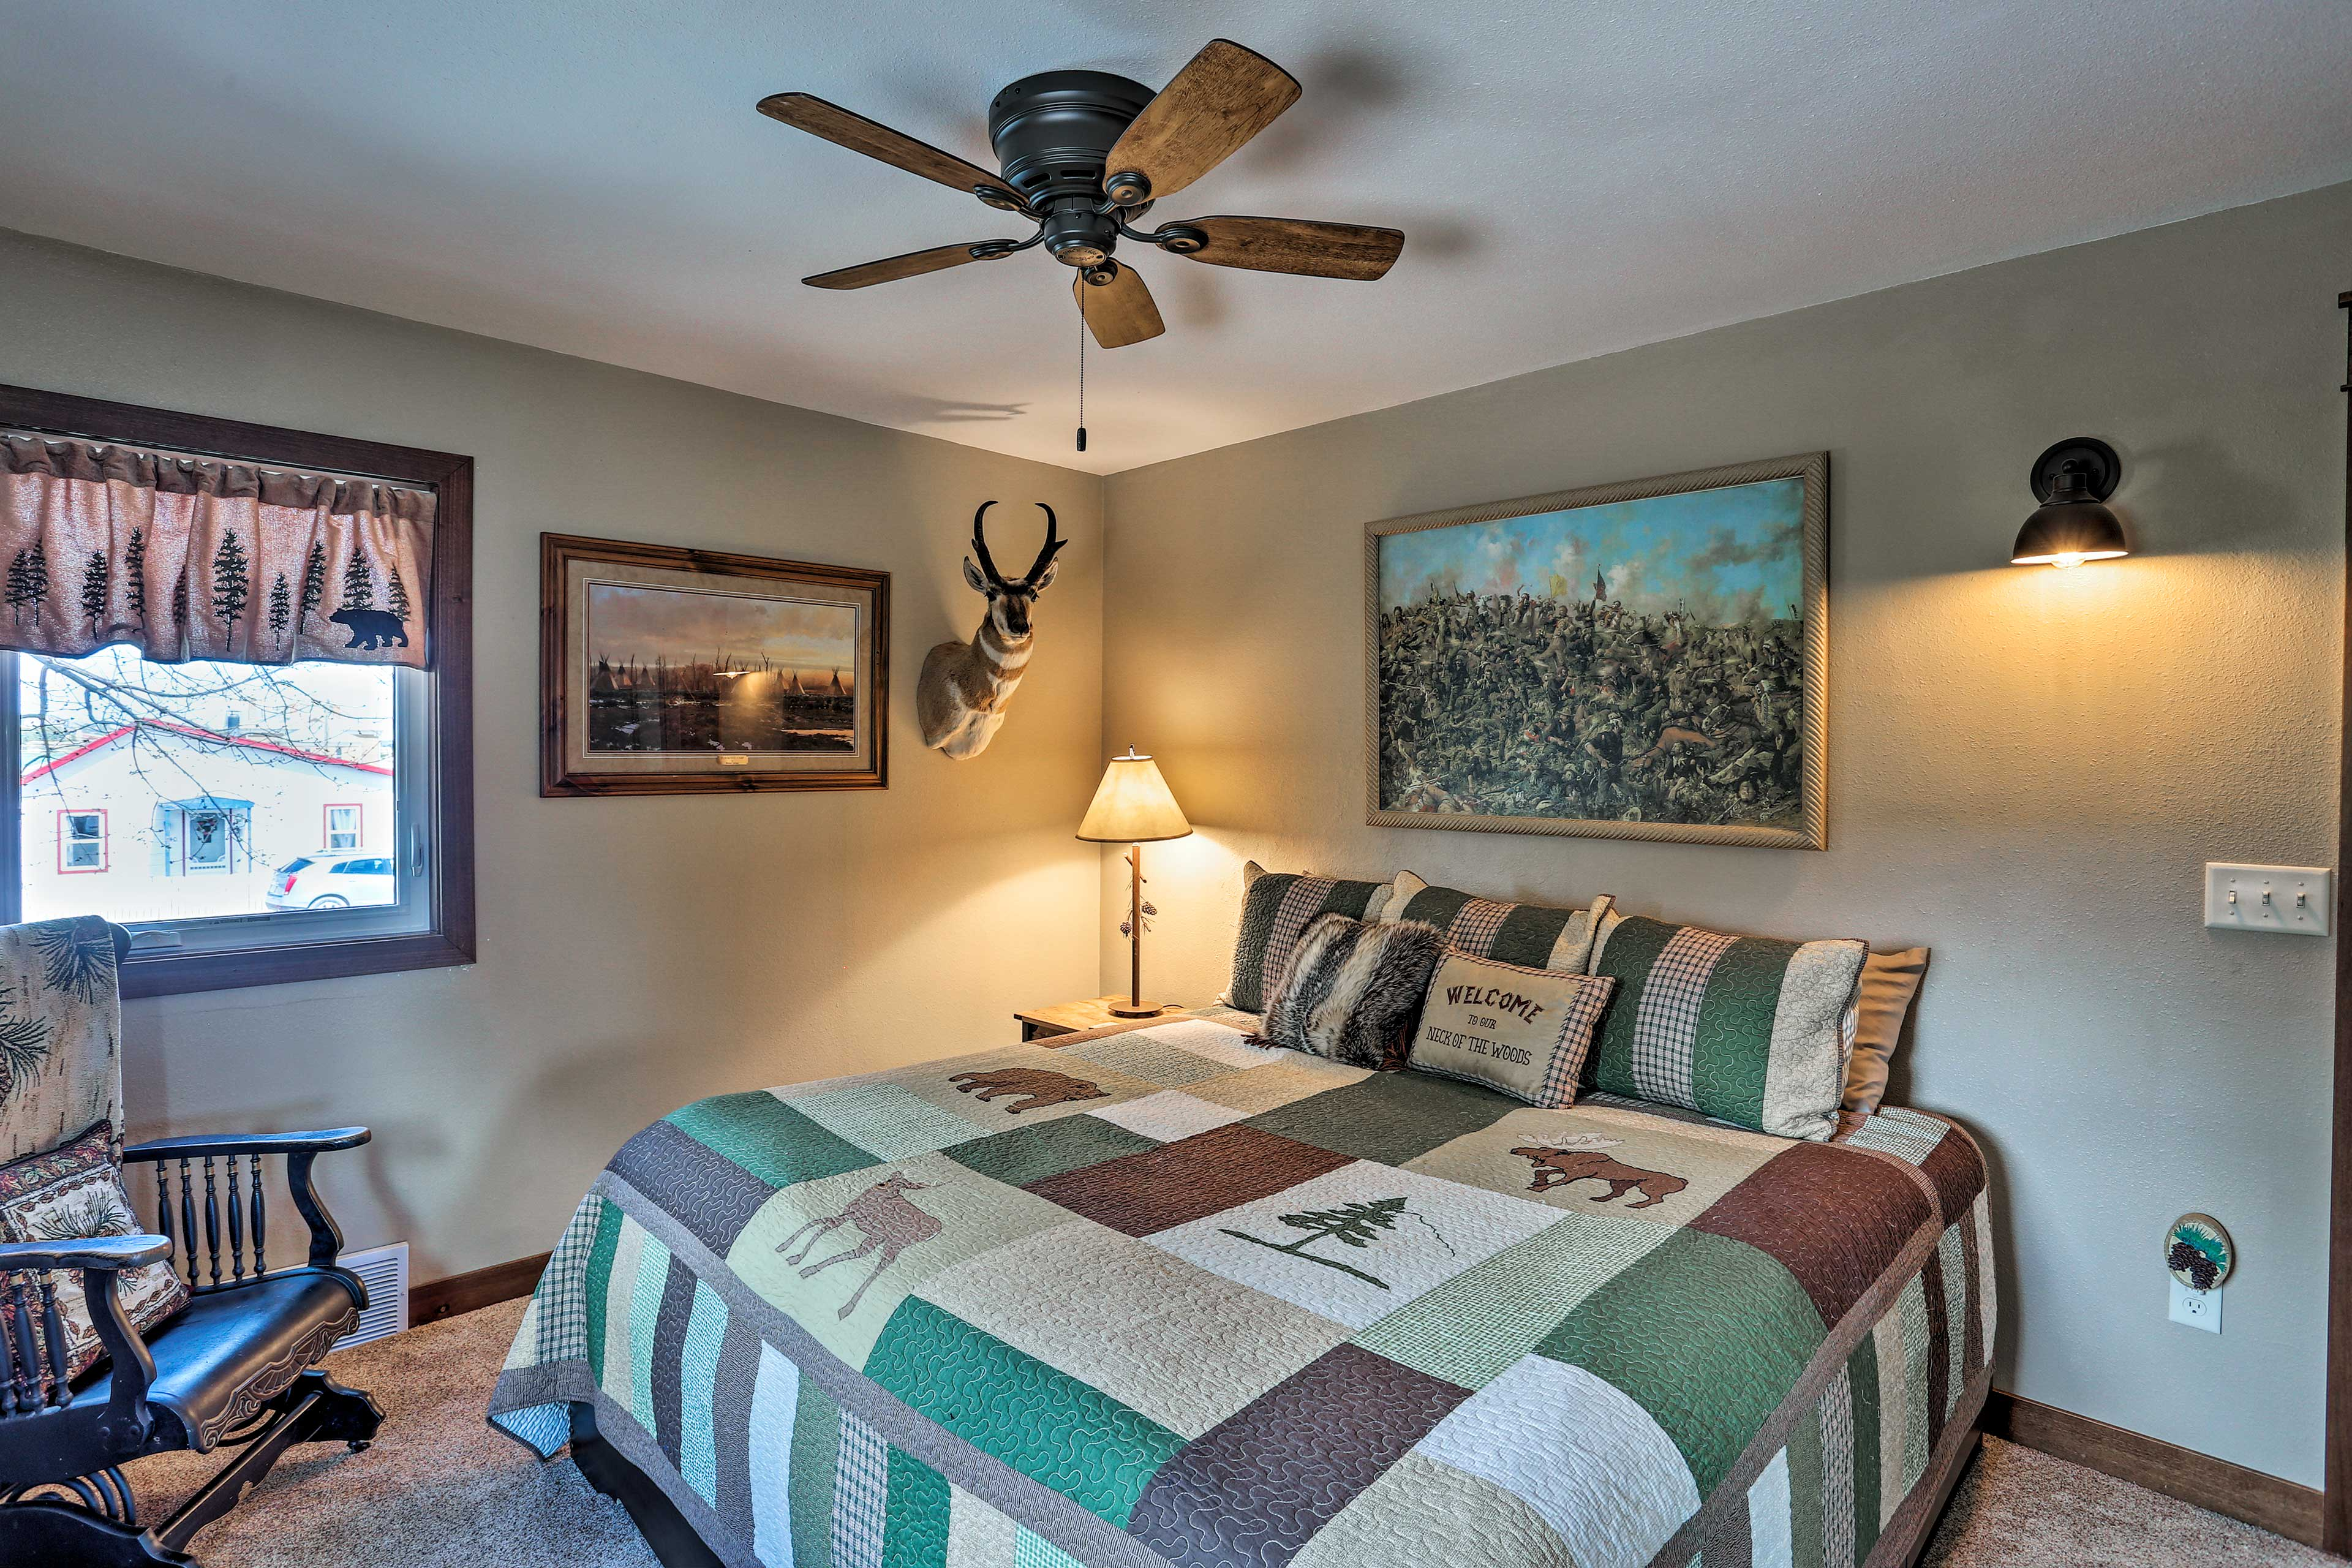 Another king bed can be found in the second bedroom.